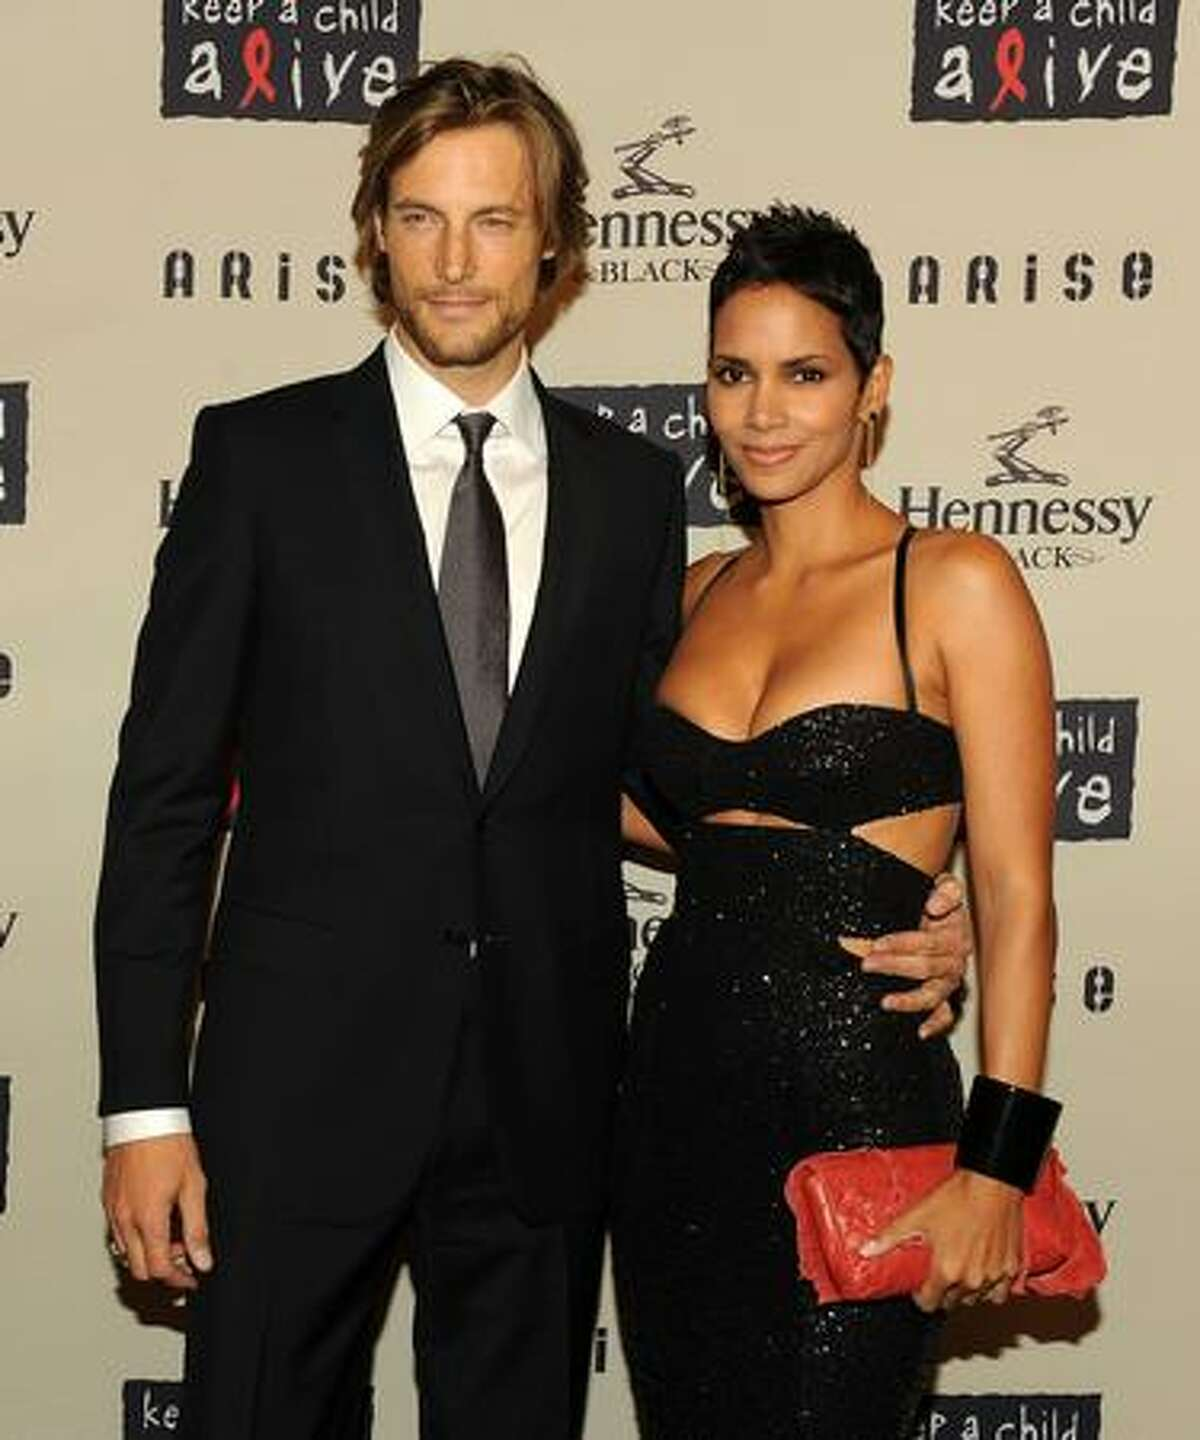 Model Gabriel Aubry and girlfriend actress Halle Berry attend Keep A Child Alive's 6th Annual Black Ball at Hammerstein Ballroom in New York City.